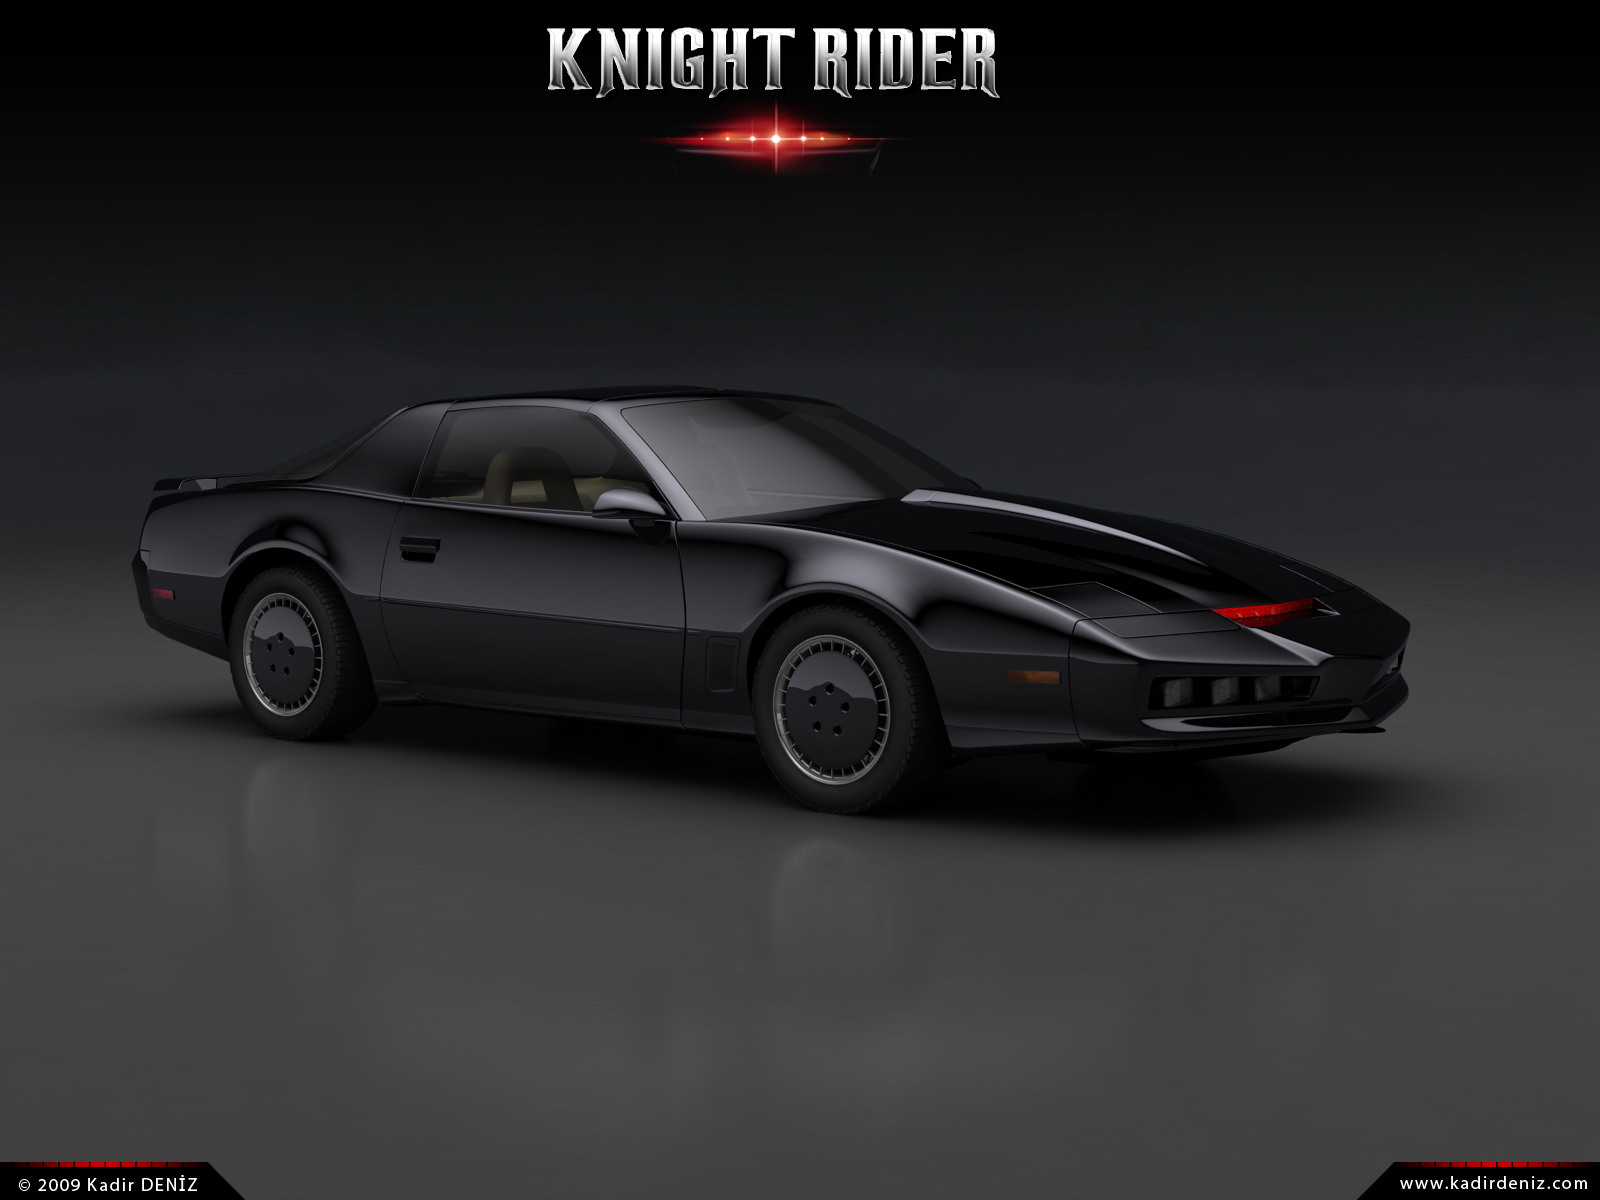 Knight Rider wallpaper 1600x1200